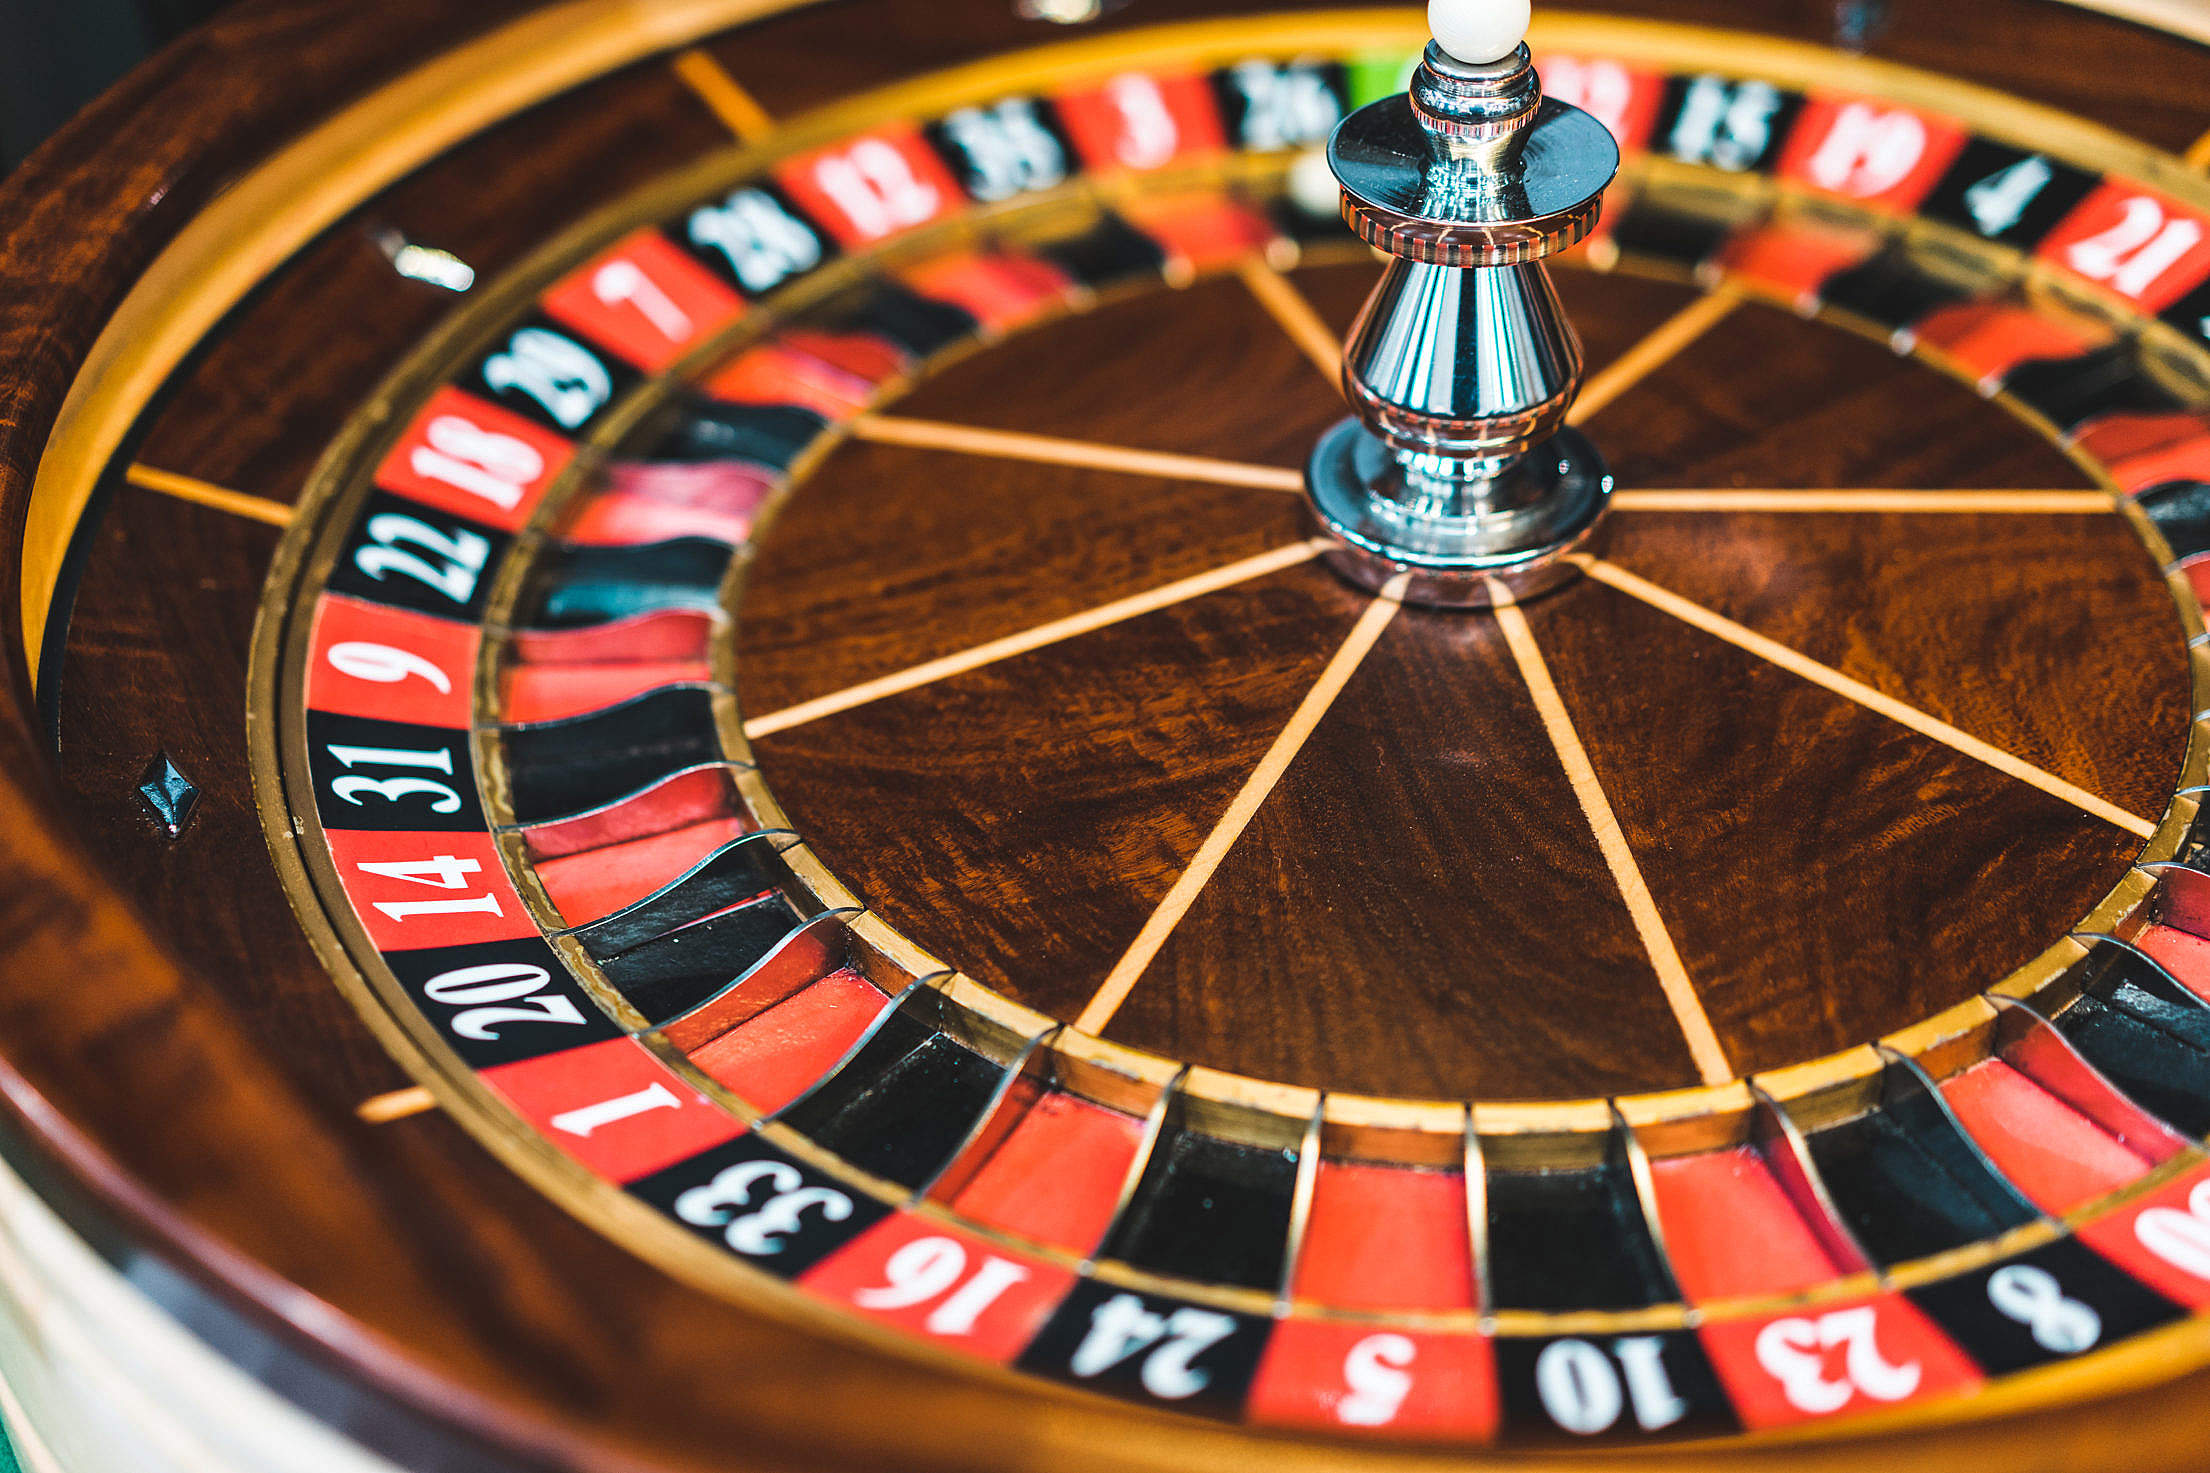 Wooden Roulette Wheel Casino Game Free Stock Photo